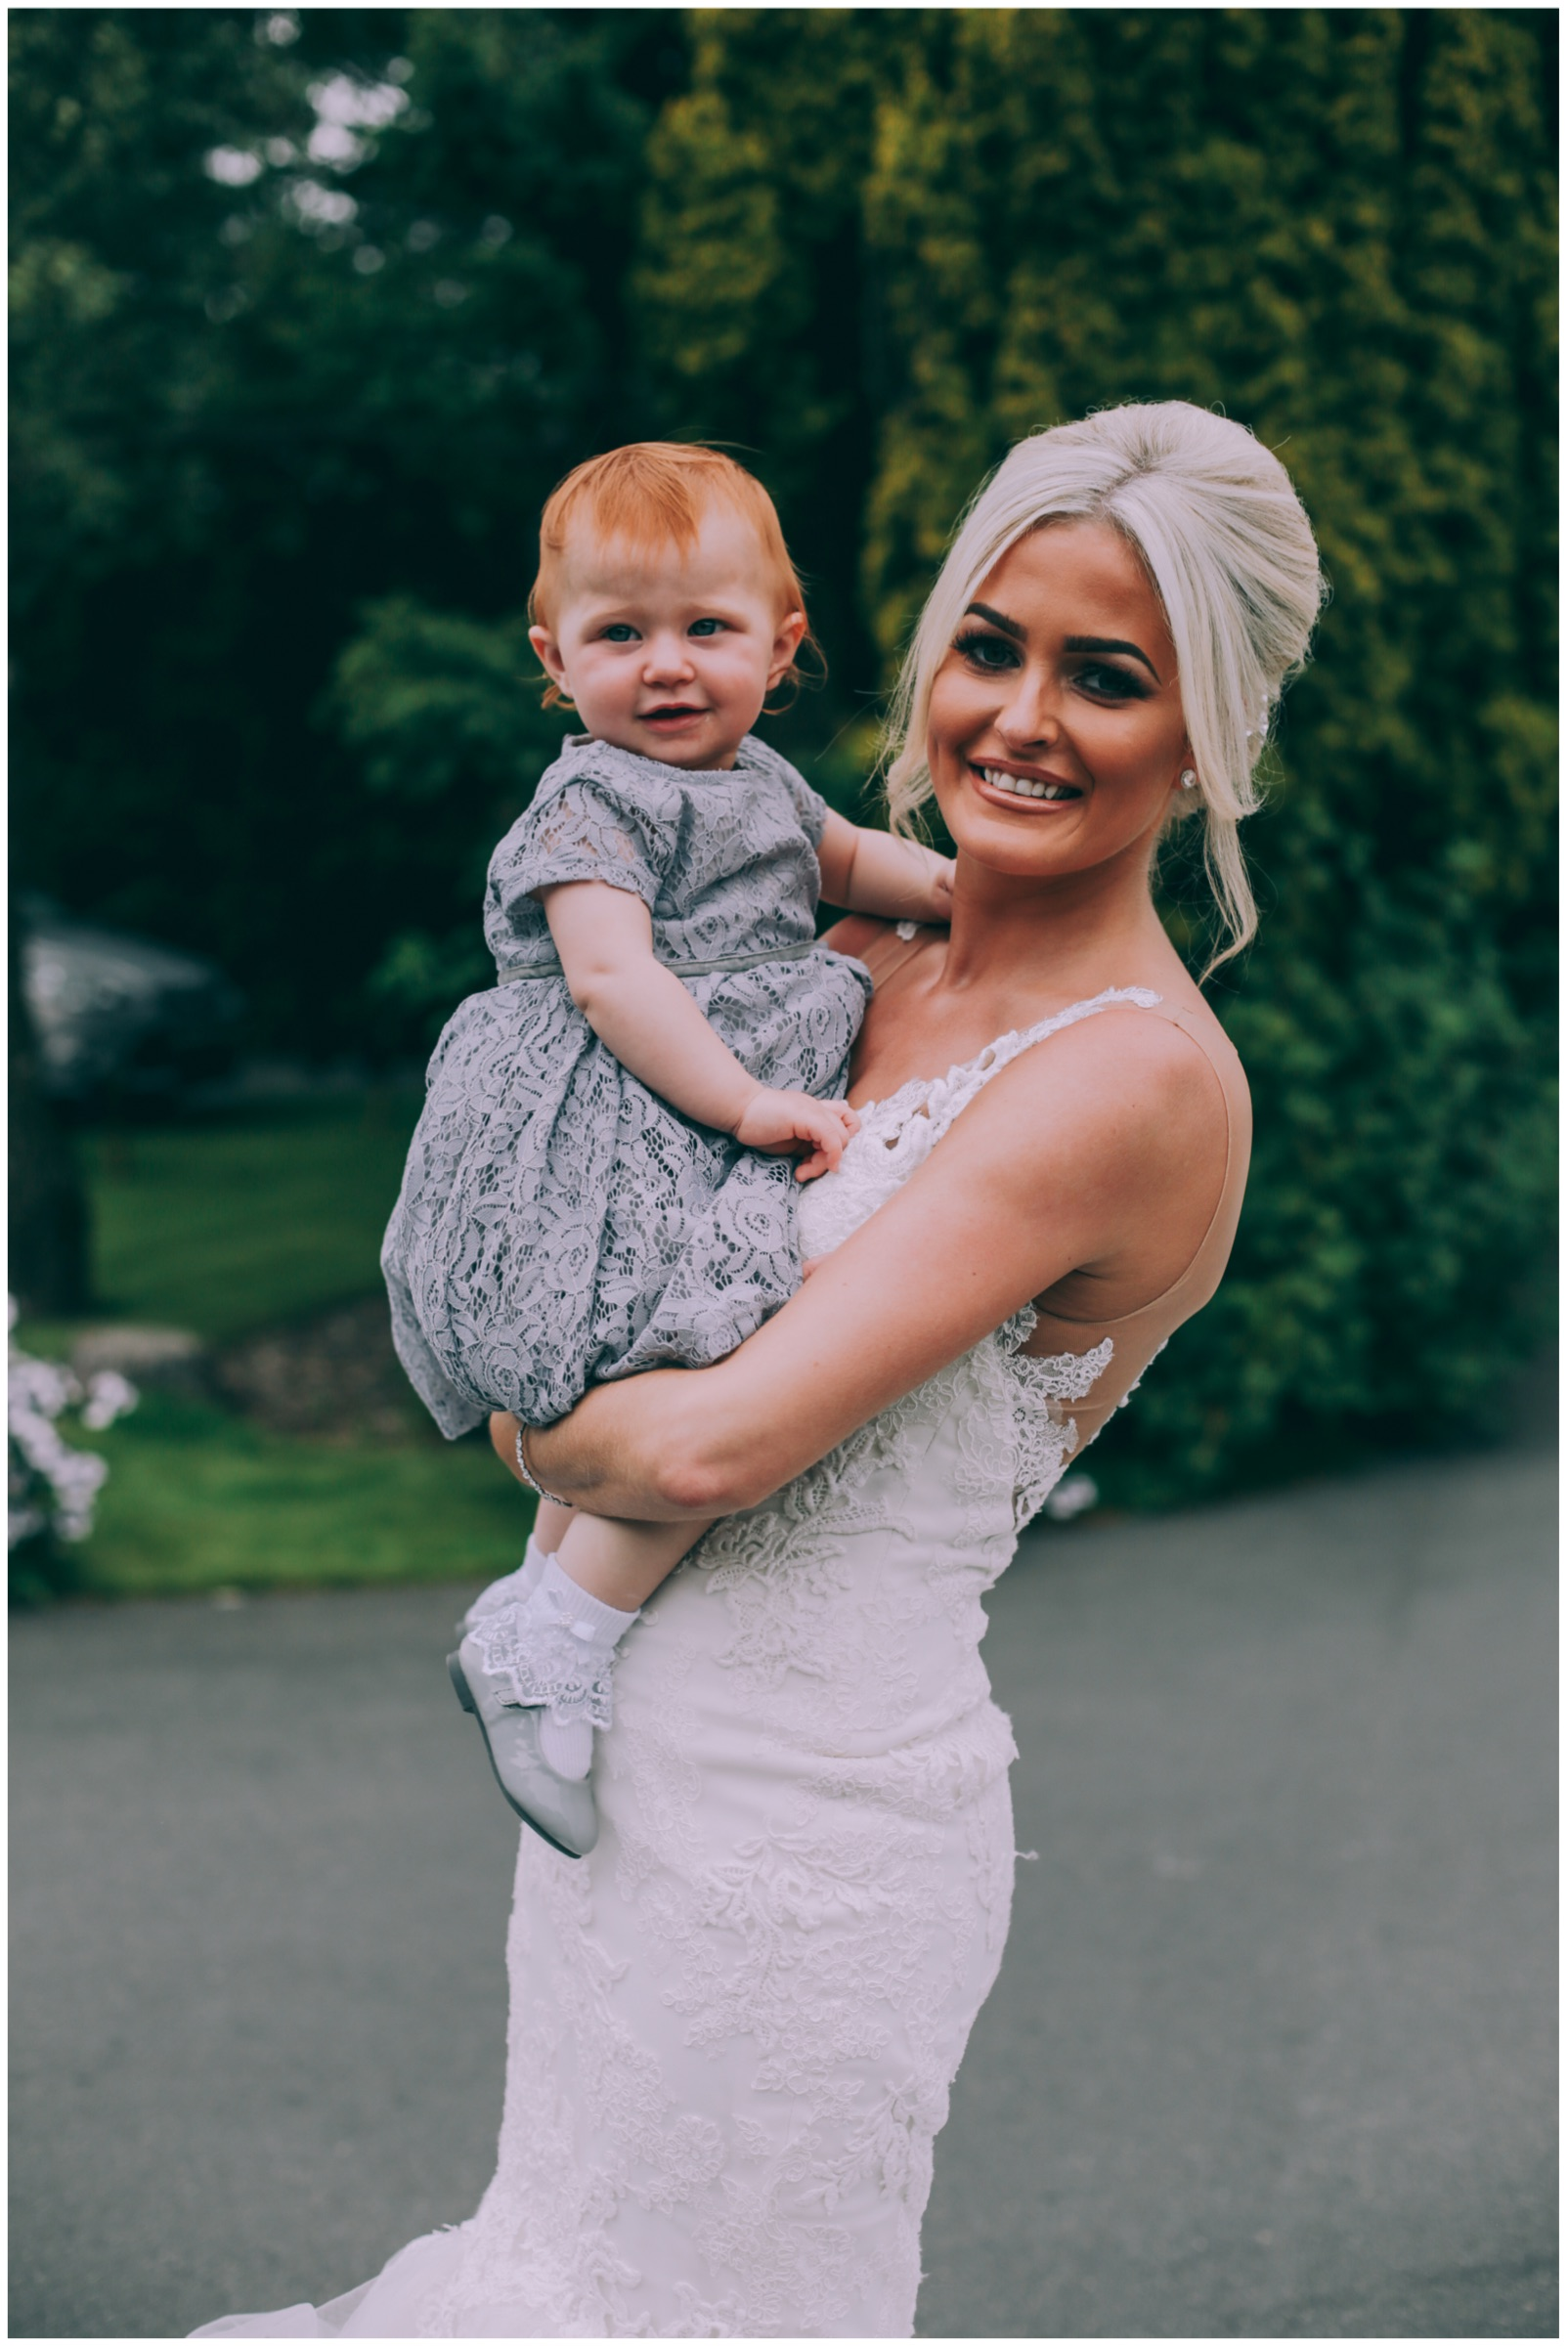 Bride in mermaid wedding dress with child